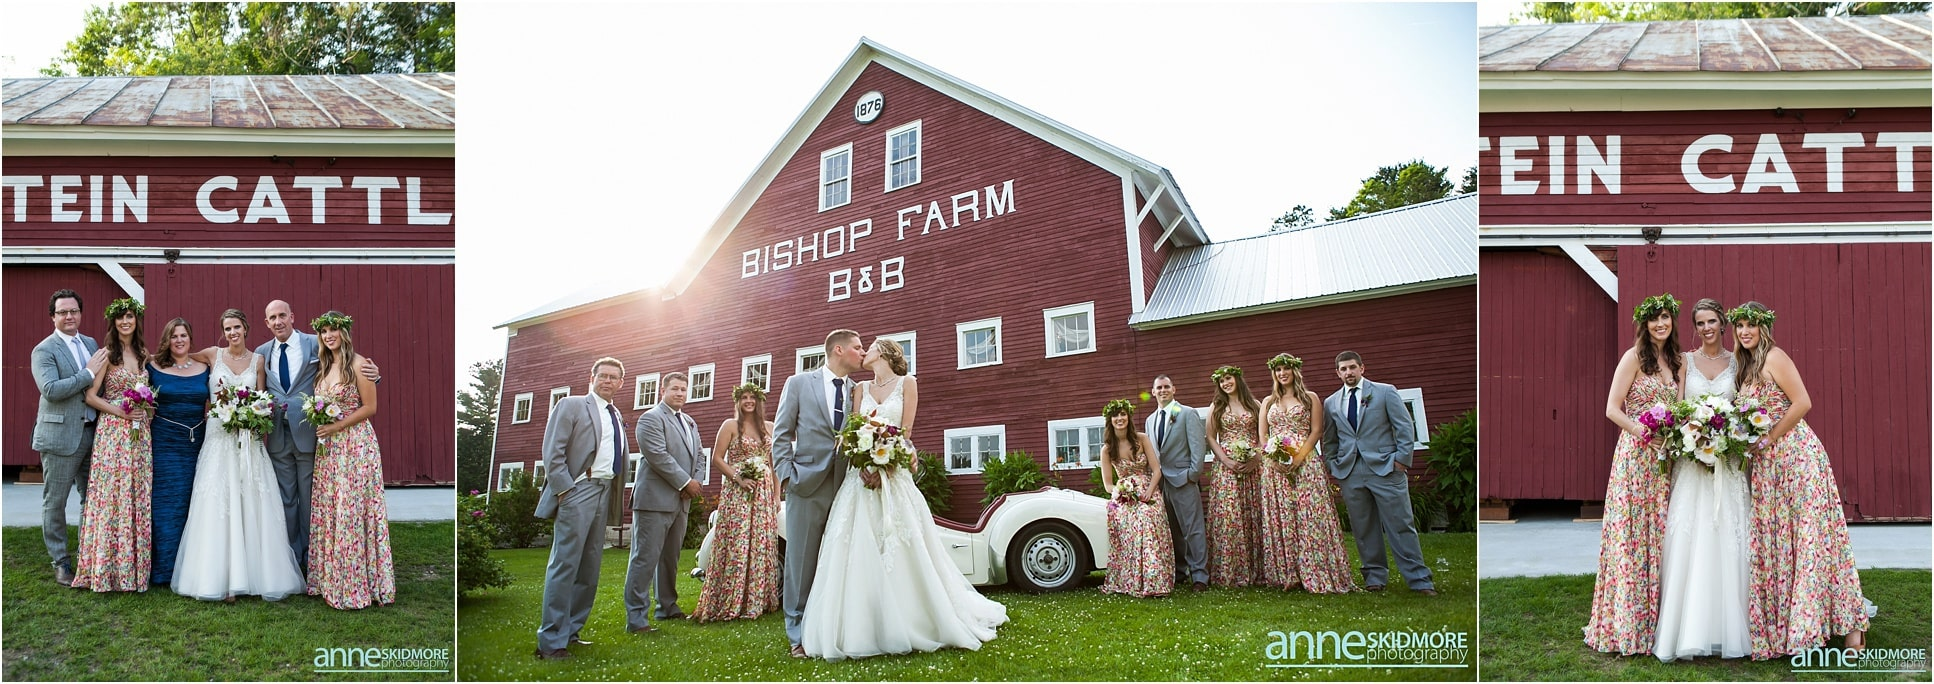 BISHOP_FARM_WEDDING__045